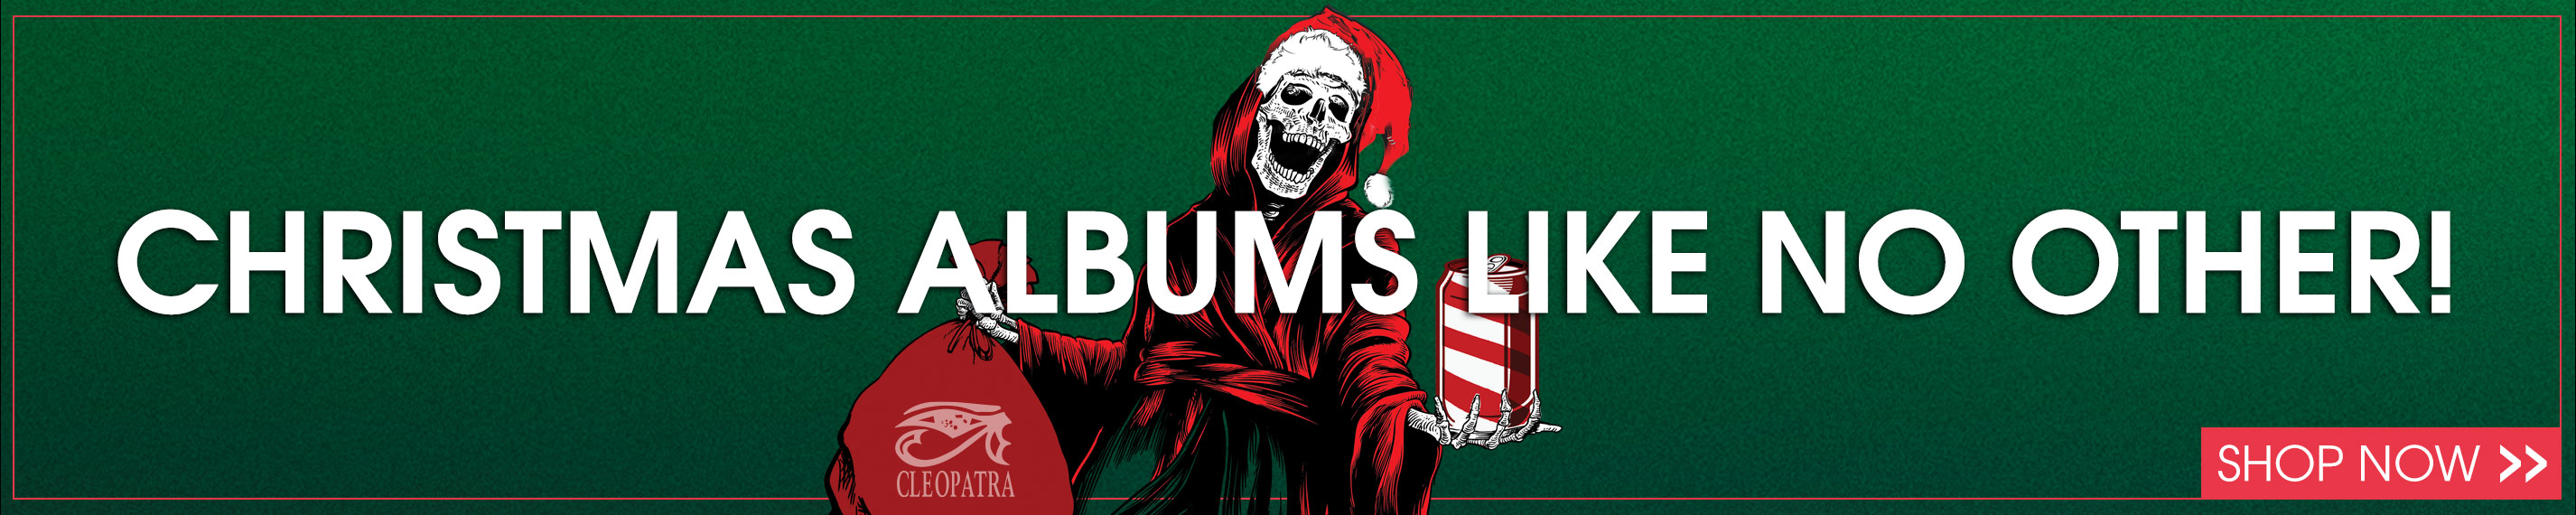 Christmas Albums Like No Other